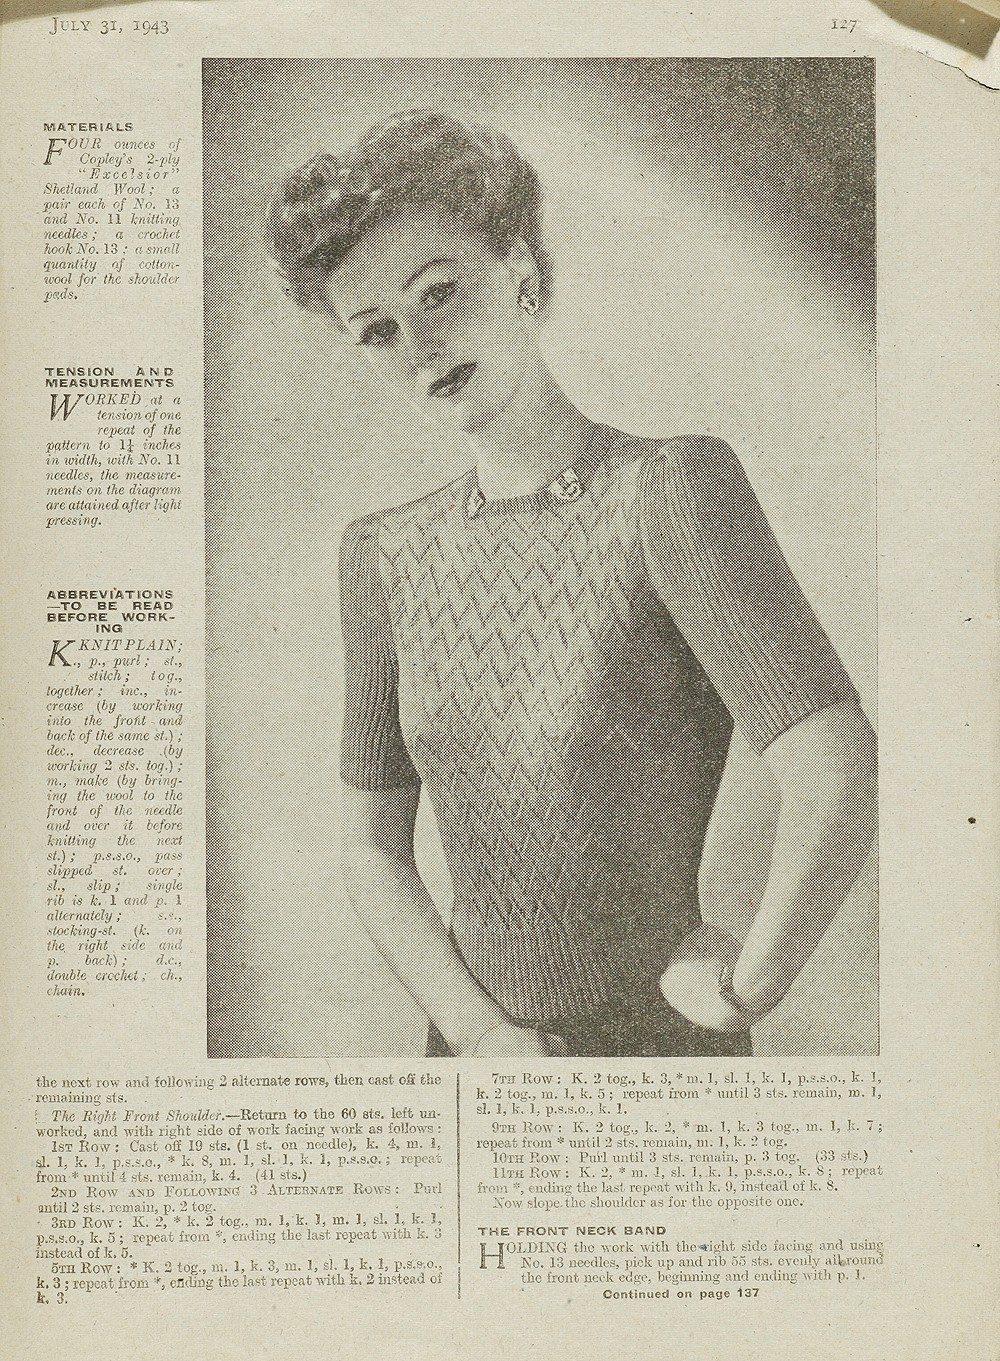 1940s Knitting Patterns - Victoria and Albert Museum